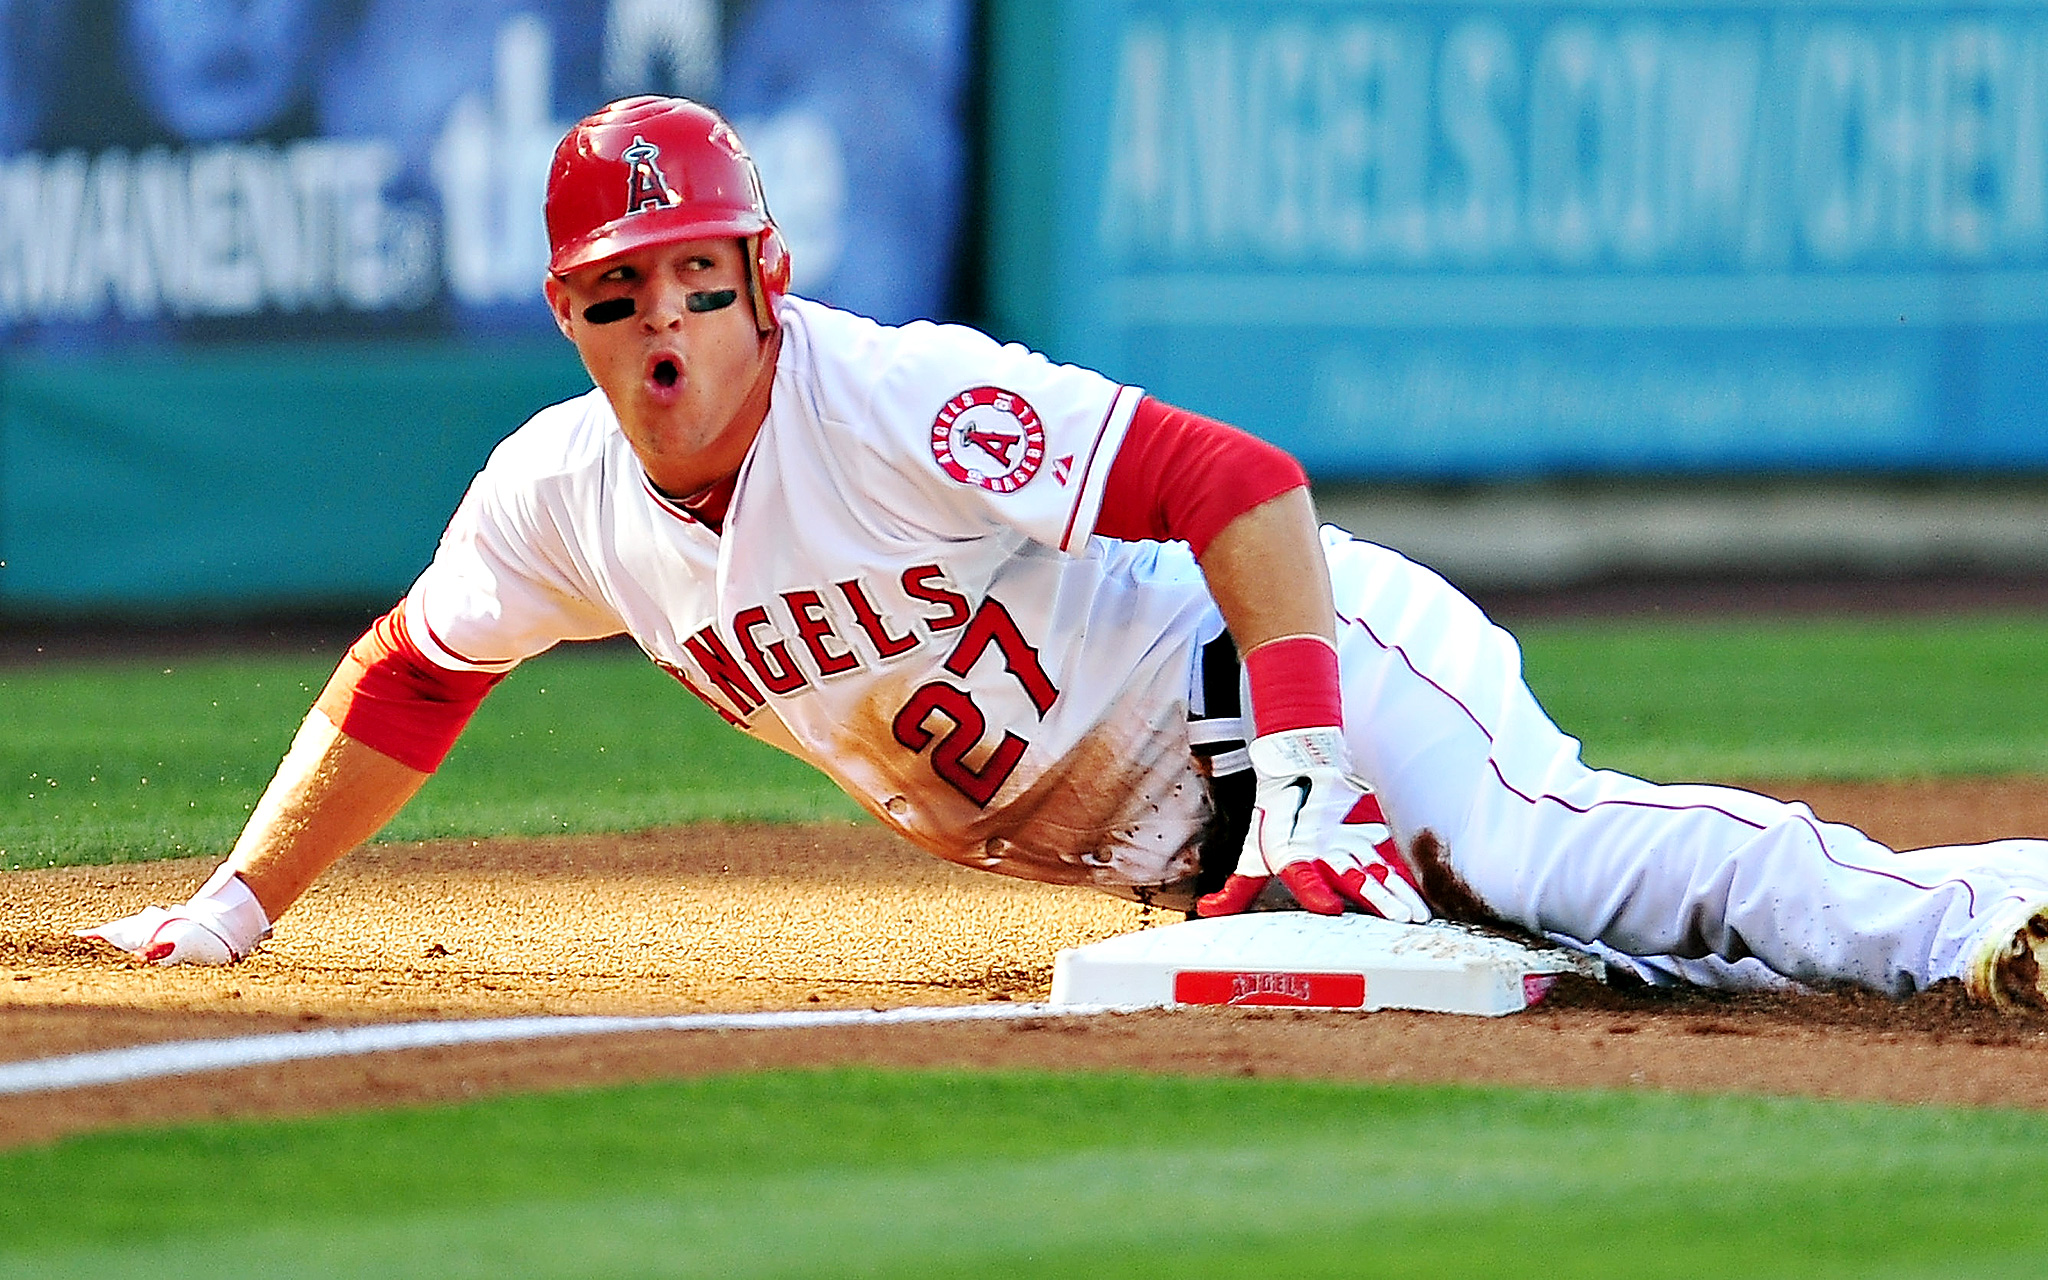 Mike Trout aims to dominate the basepaths (and batter's box) again in 2014.